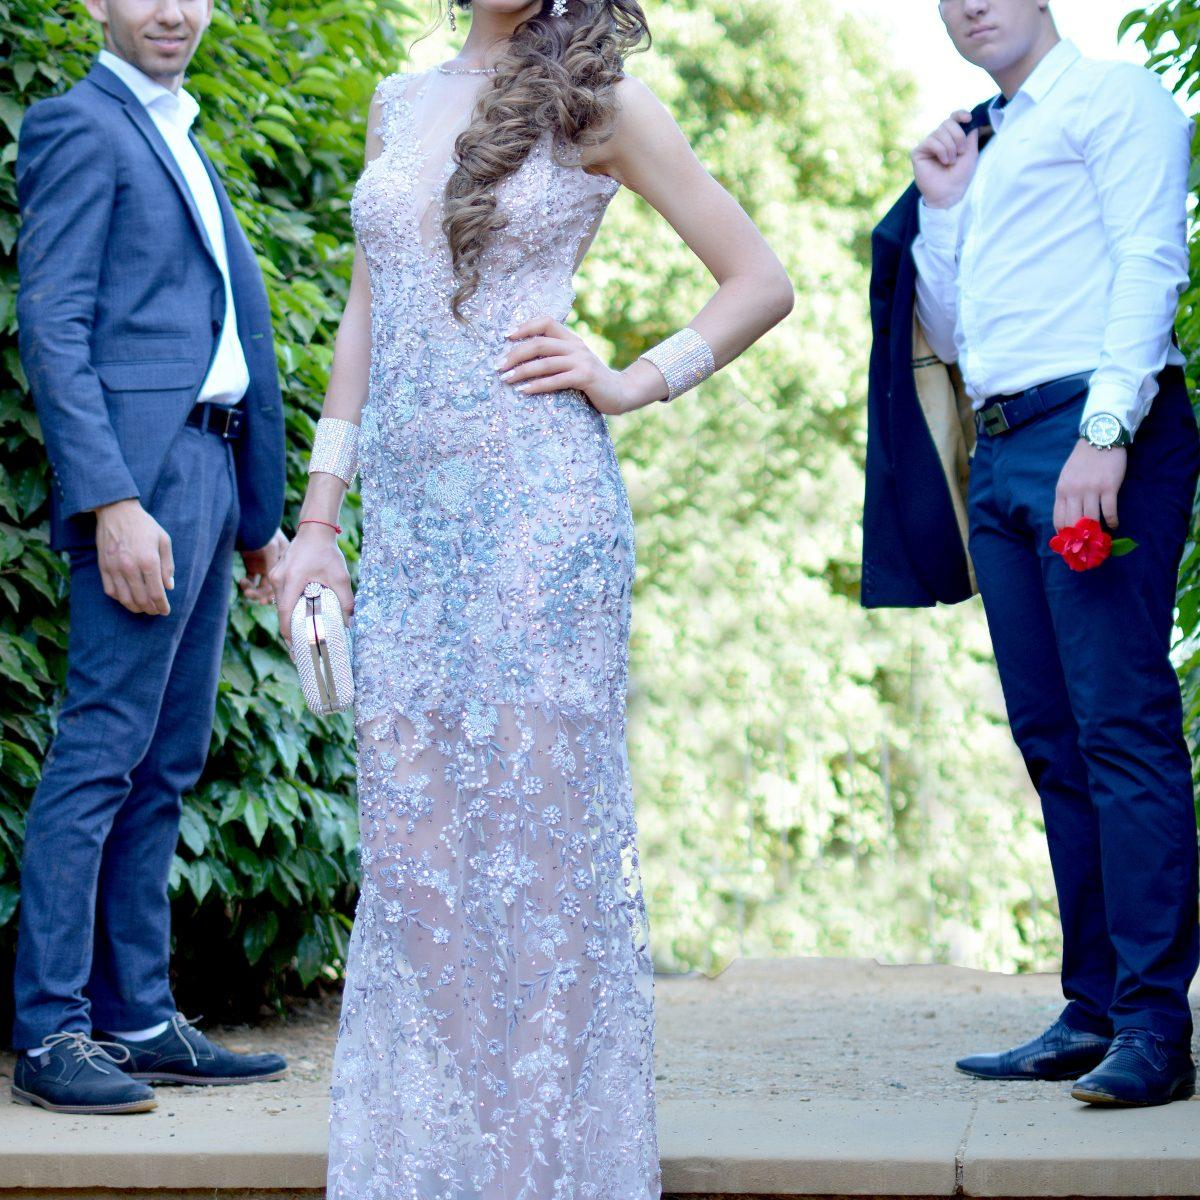 Prom photography services in London